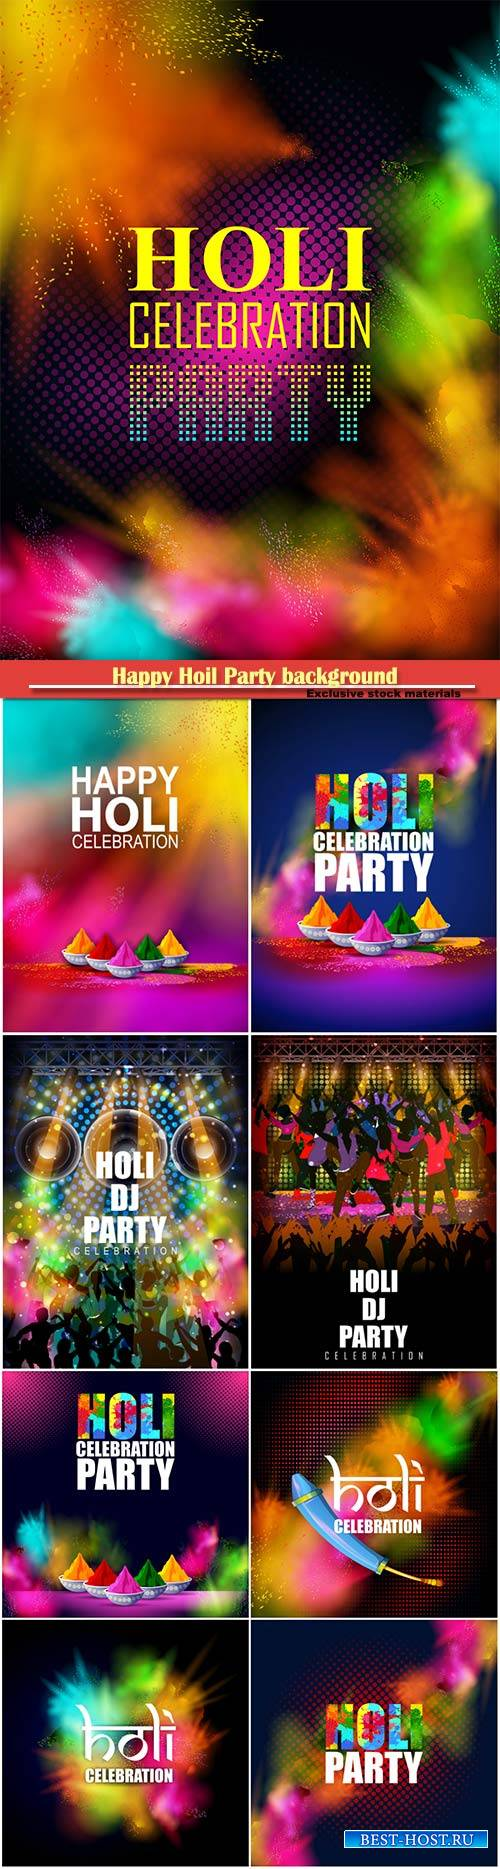 Happy Hoil Party background for festival of colors in India